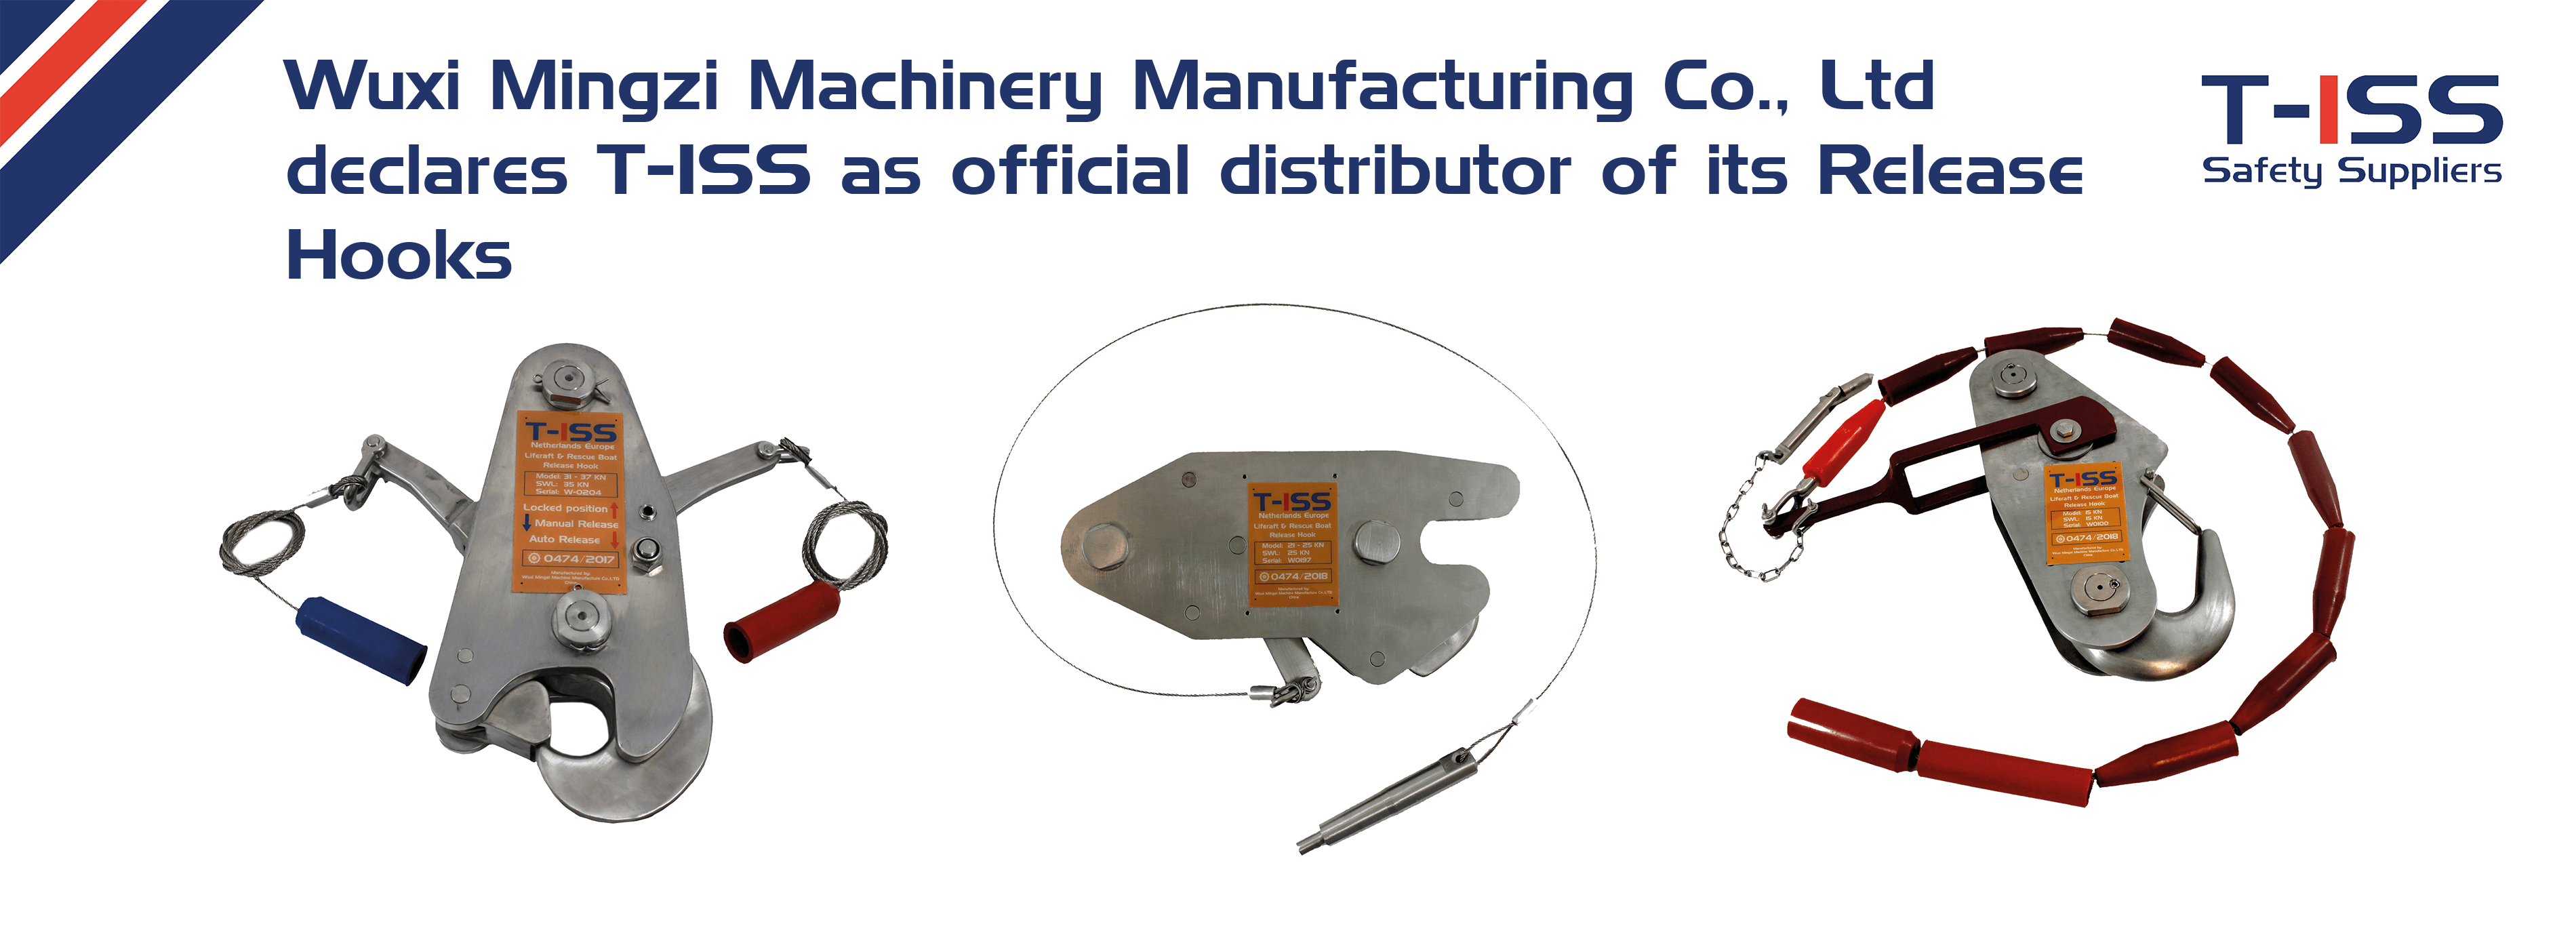 Wuxi Mingzi Machinery Manufacturing Co., Ltd declares T-ISS as official distributor of its Release Hooks